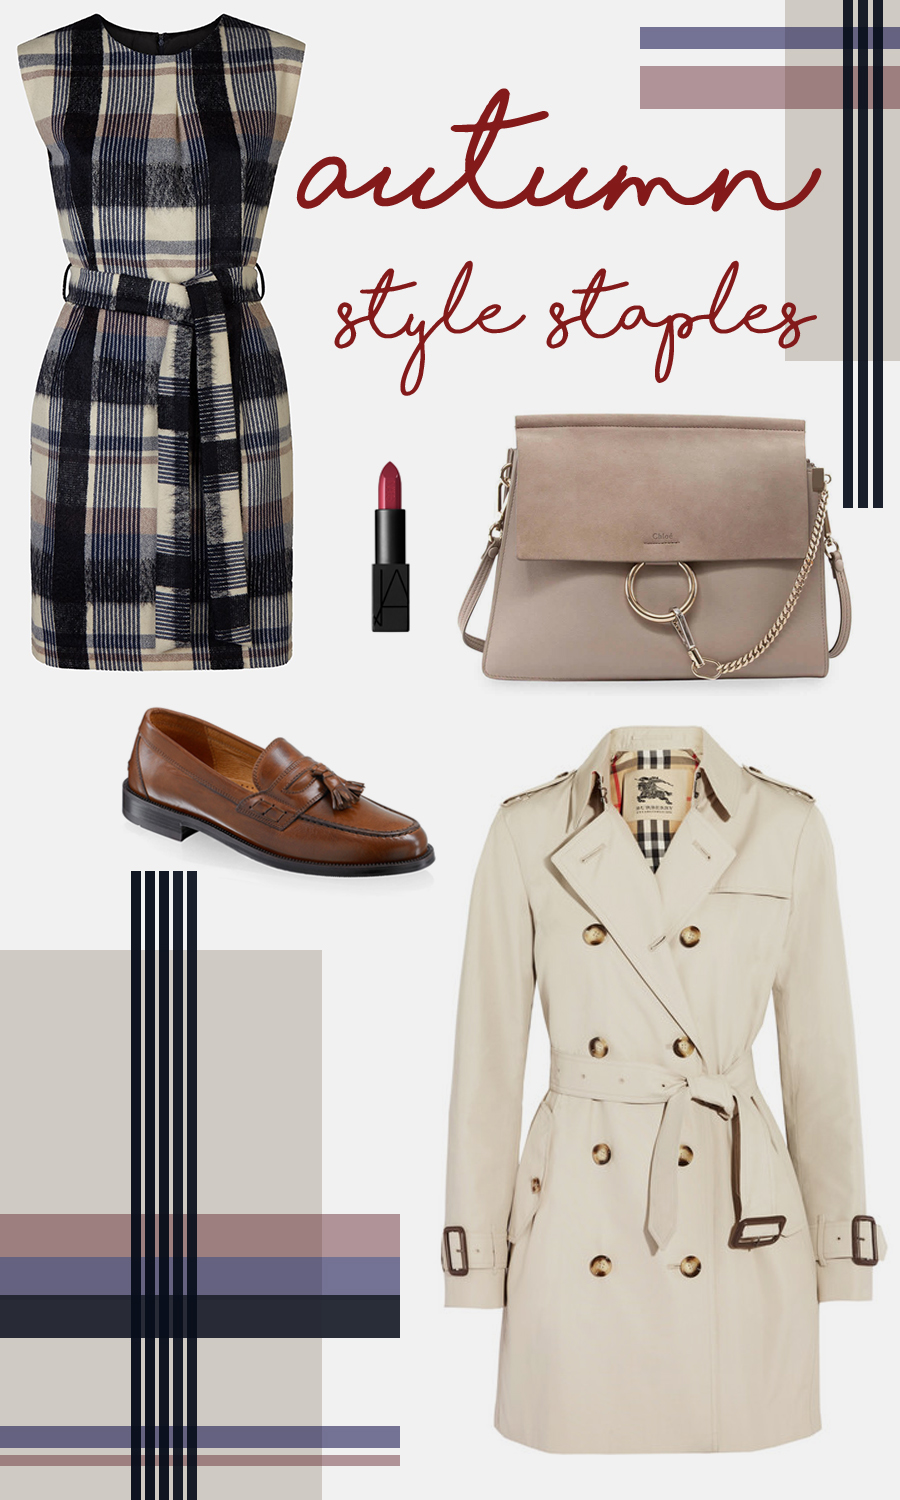 Fashion: Autumn Style Staples with Acquascutum